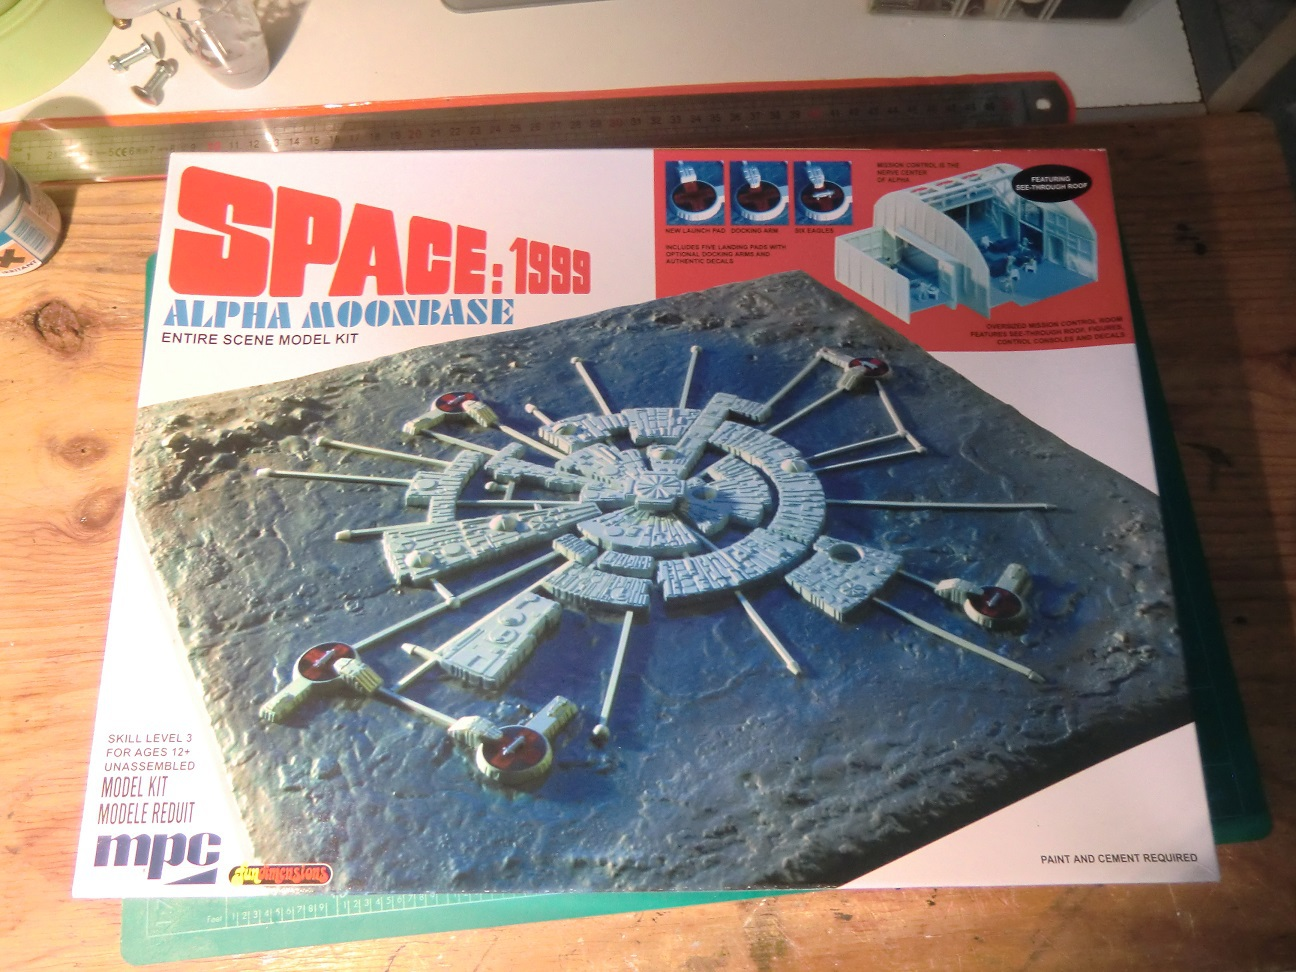 SPACE 1999 1152983